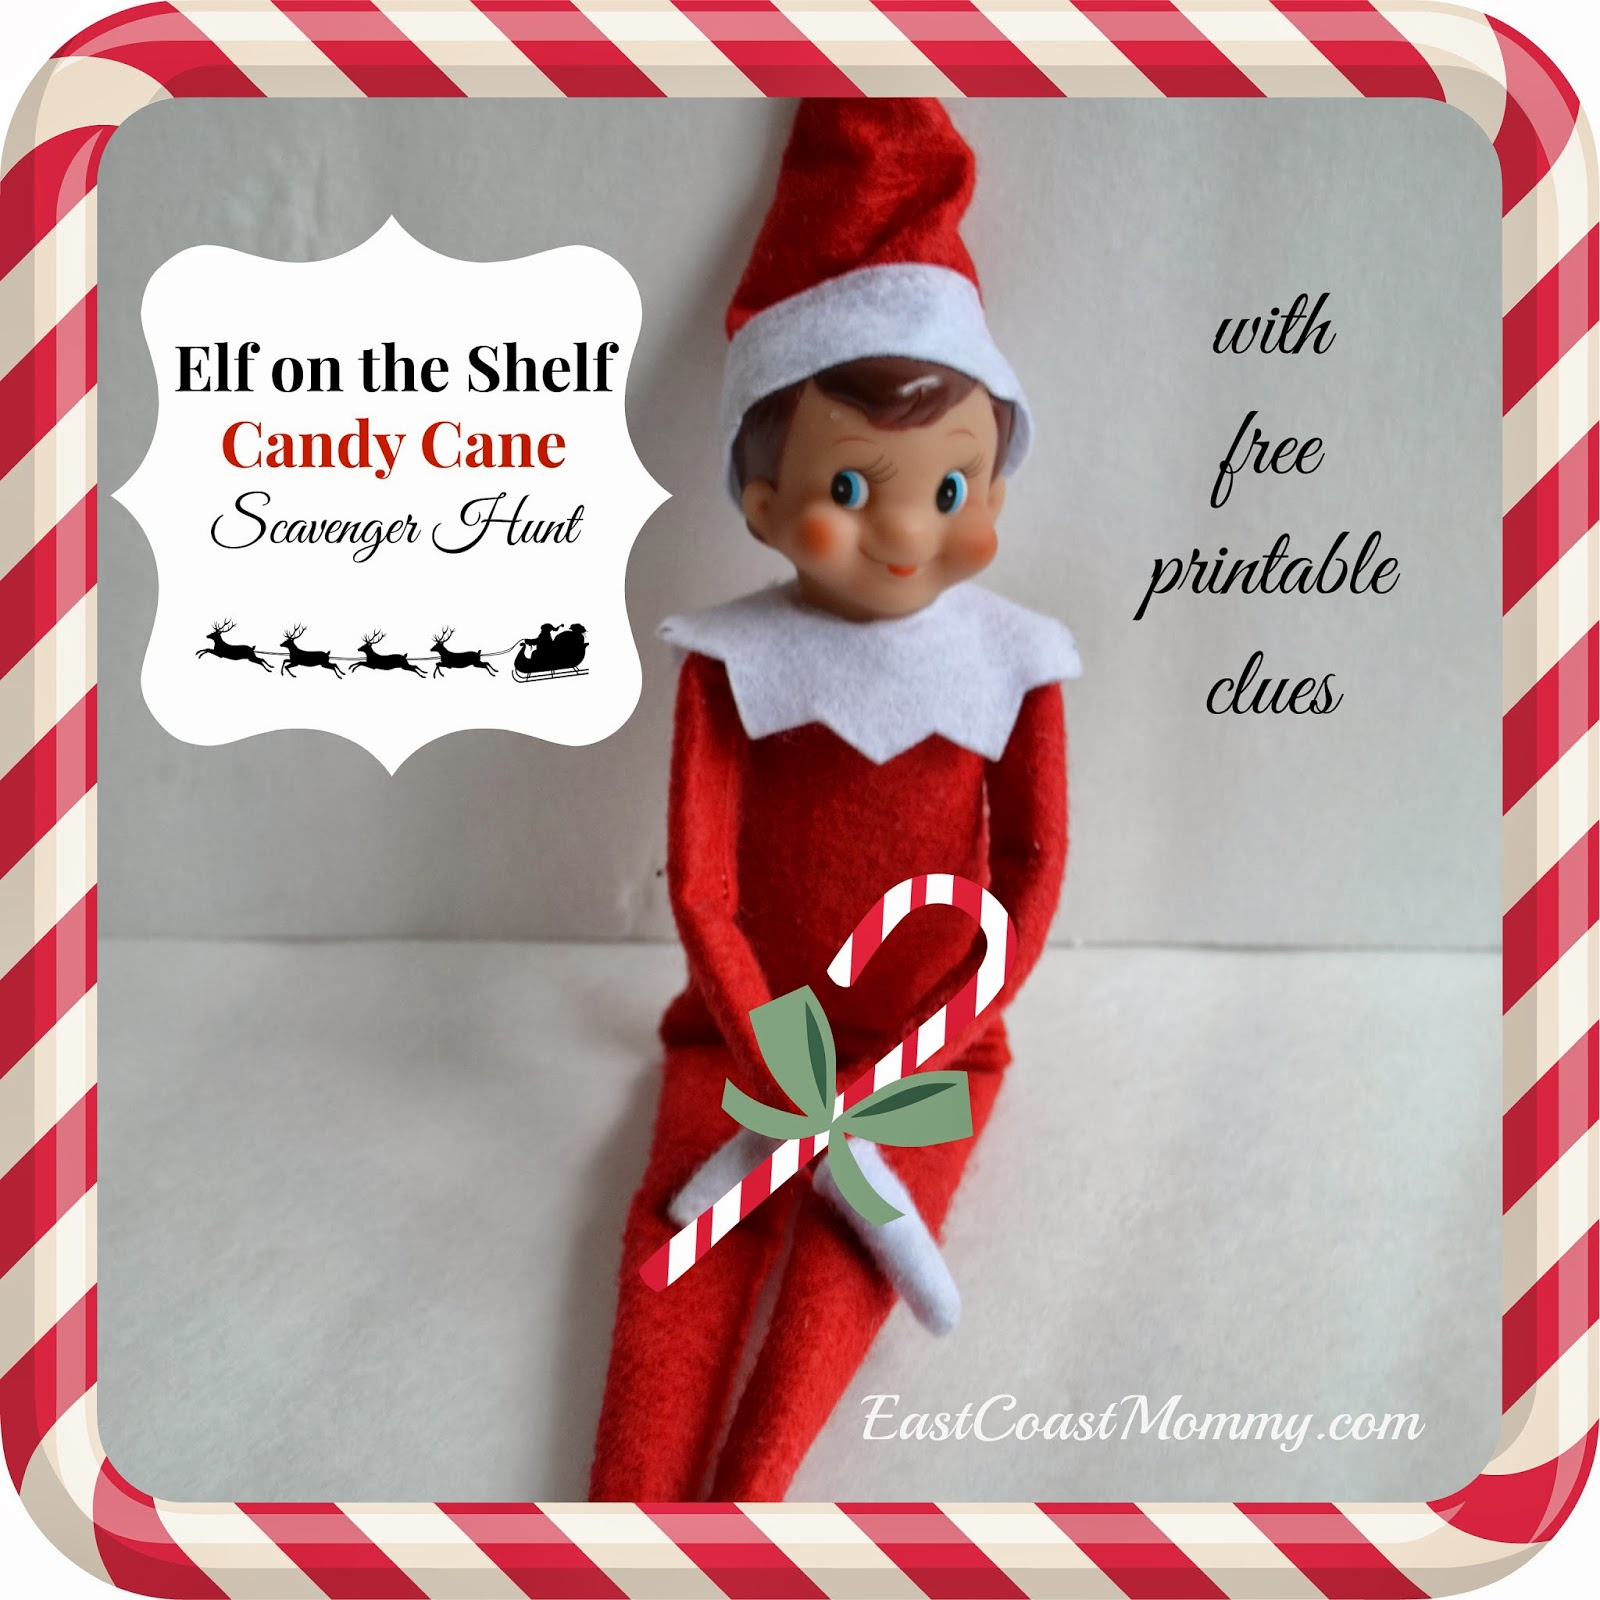 Candy Cane clipart elf on shelf Eight on Coast brought the